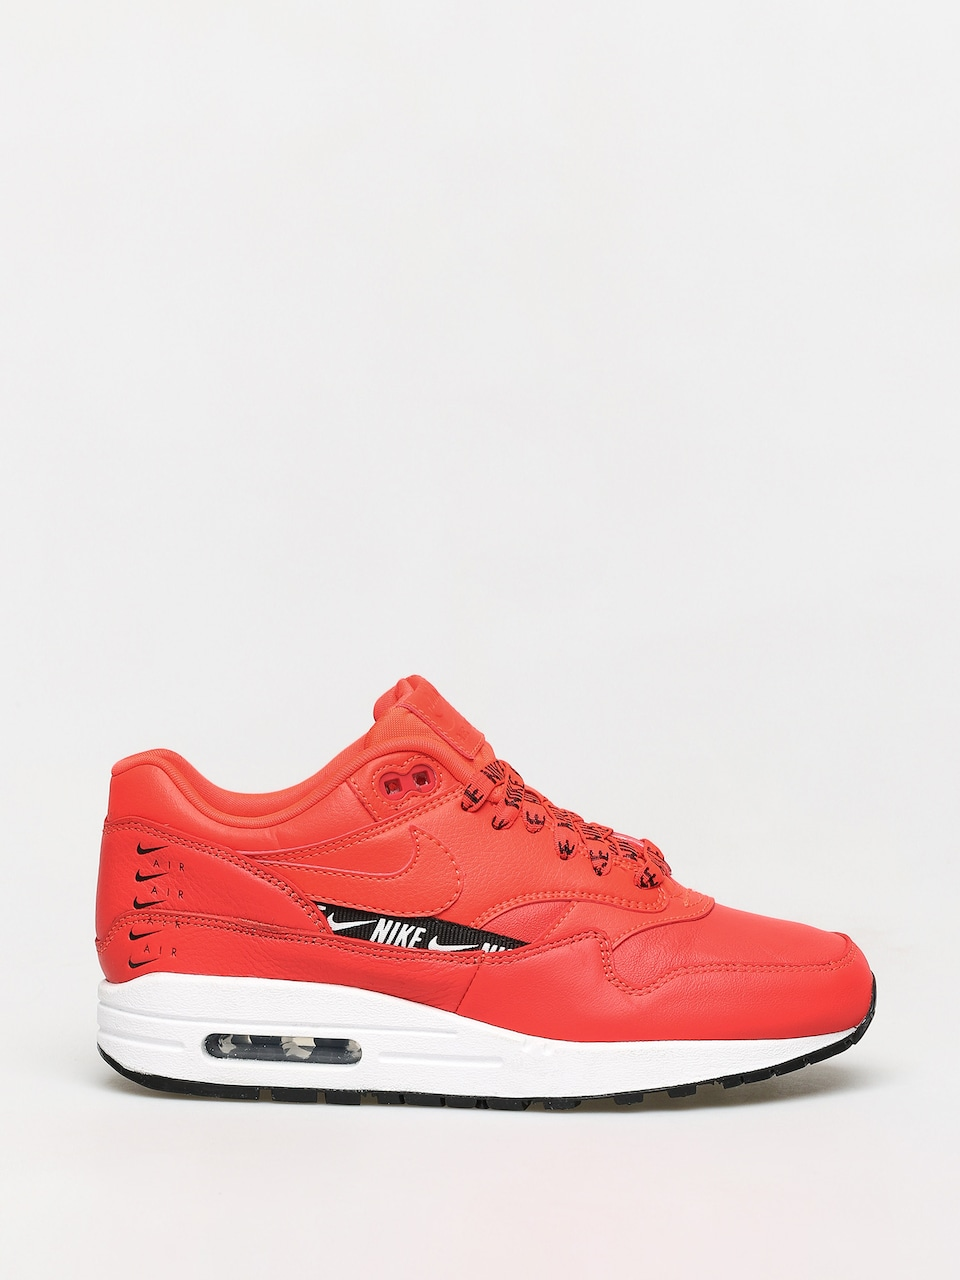 Nike Air Max 1 Premium SC Team Red & Metallic Dark Grey | END.